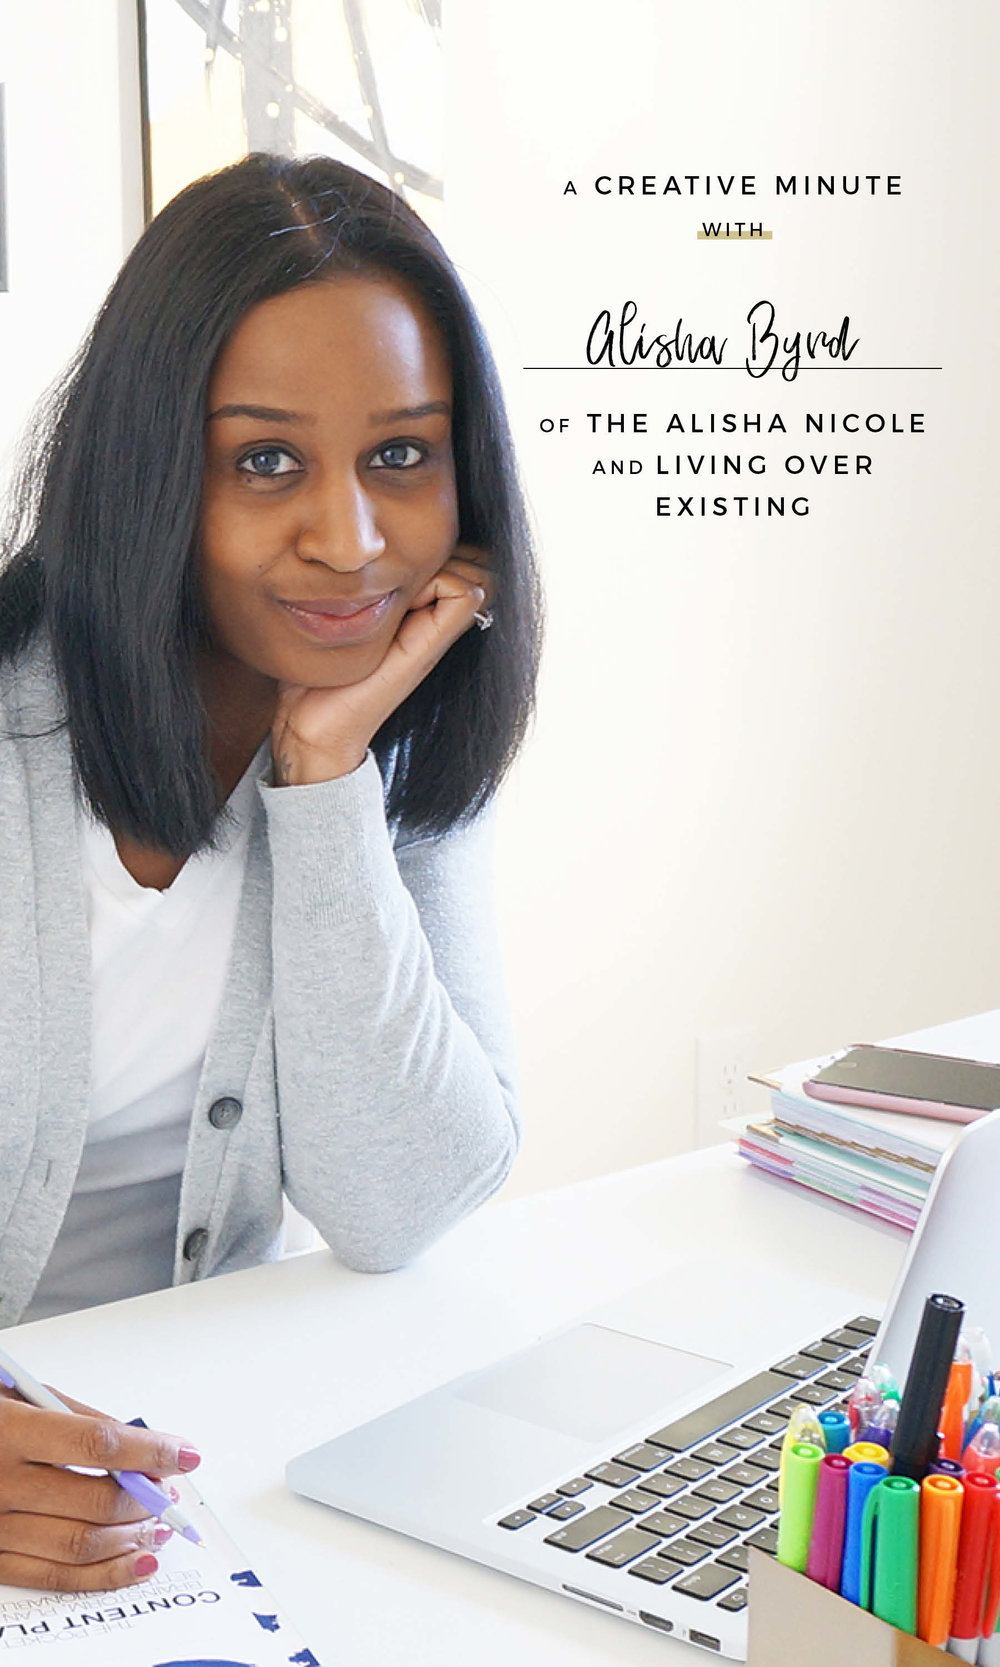 A Creative Minute With... Alisha Byrd, Clarity Coach & Author